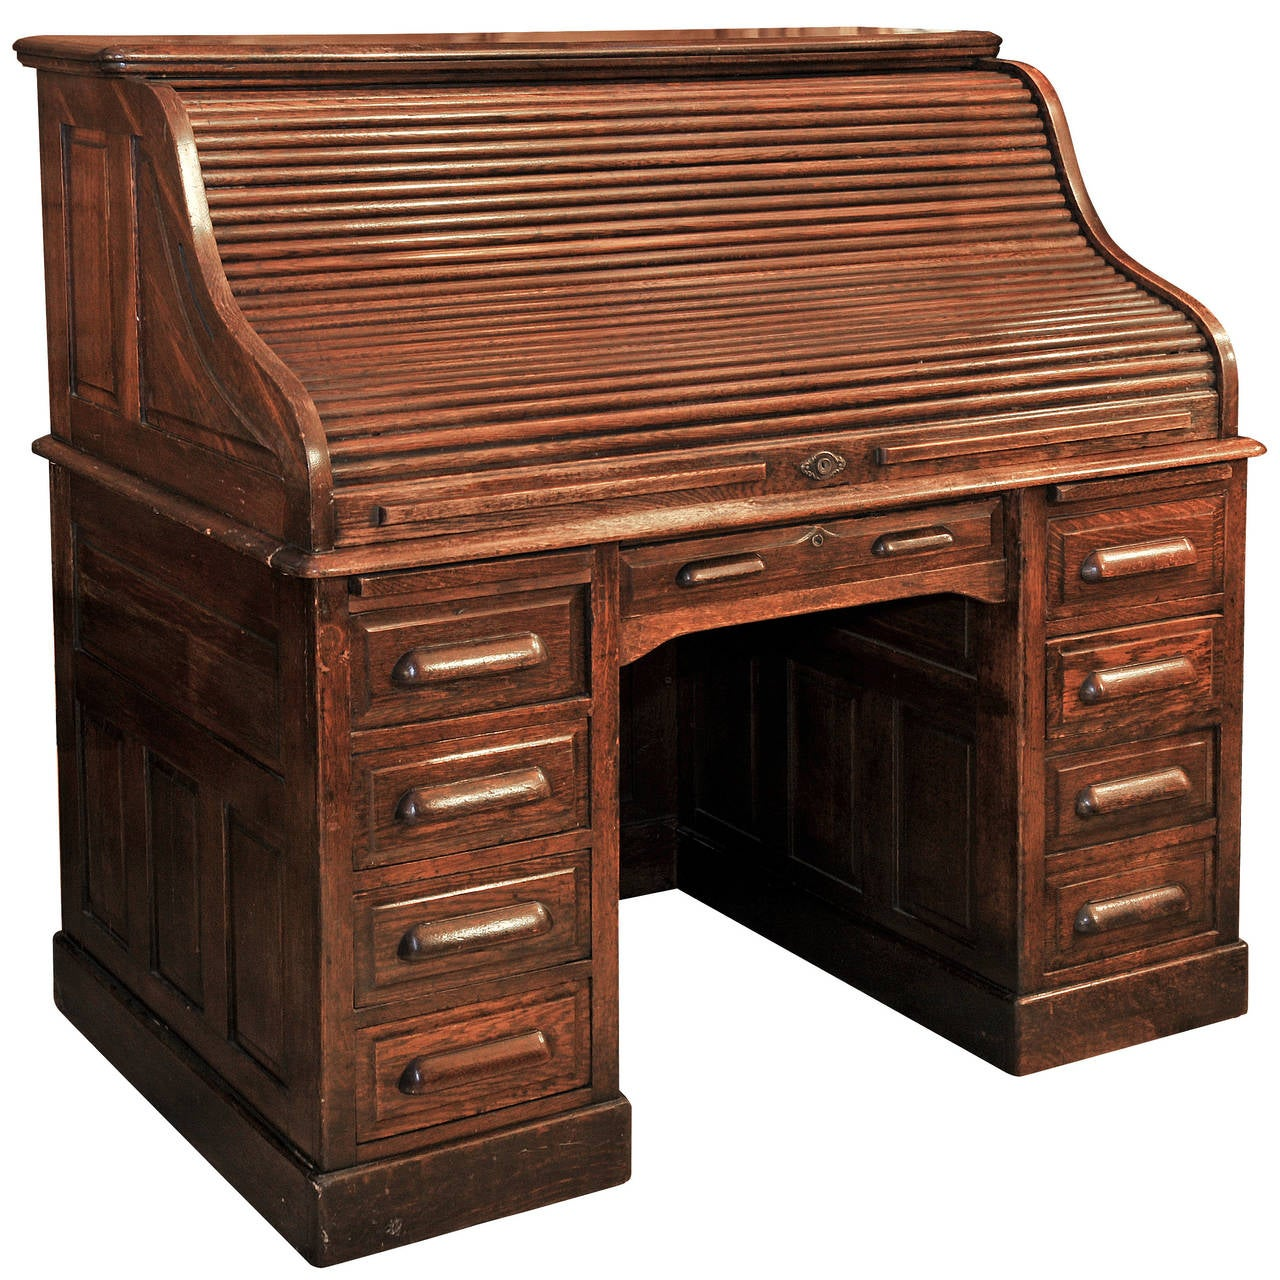 Oak Roll Top Desk at 1stdibs